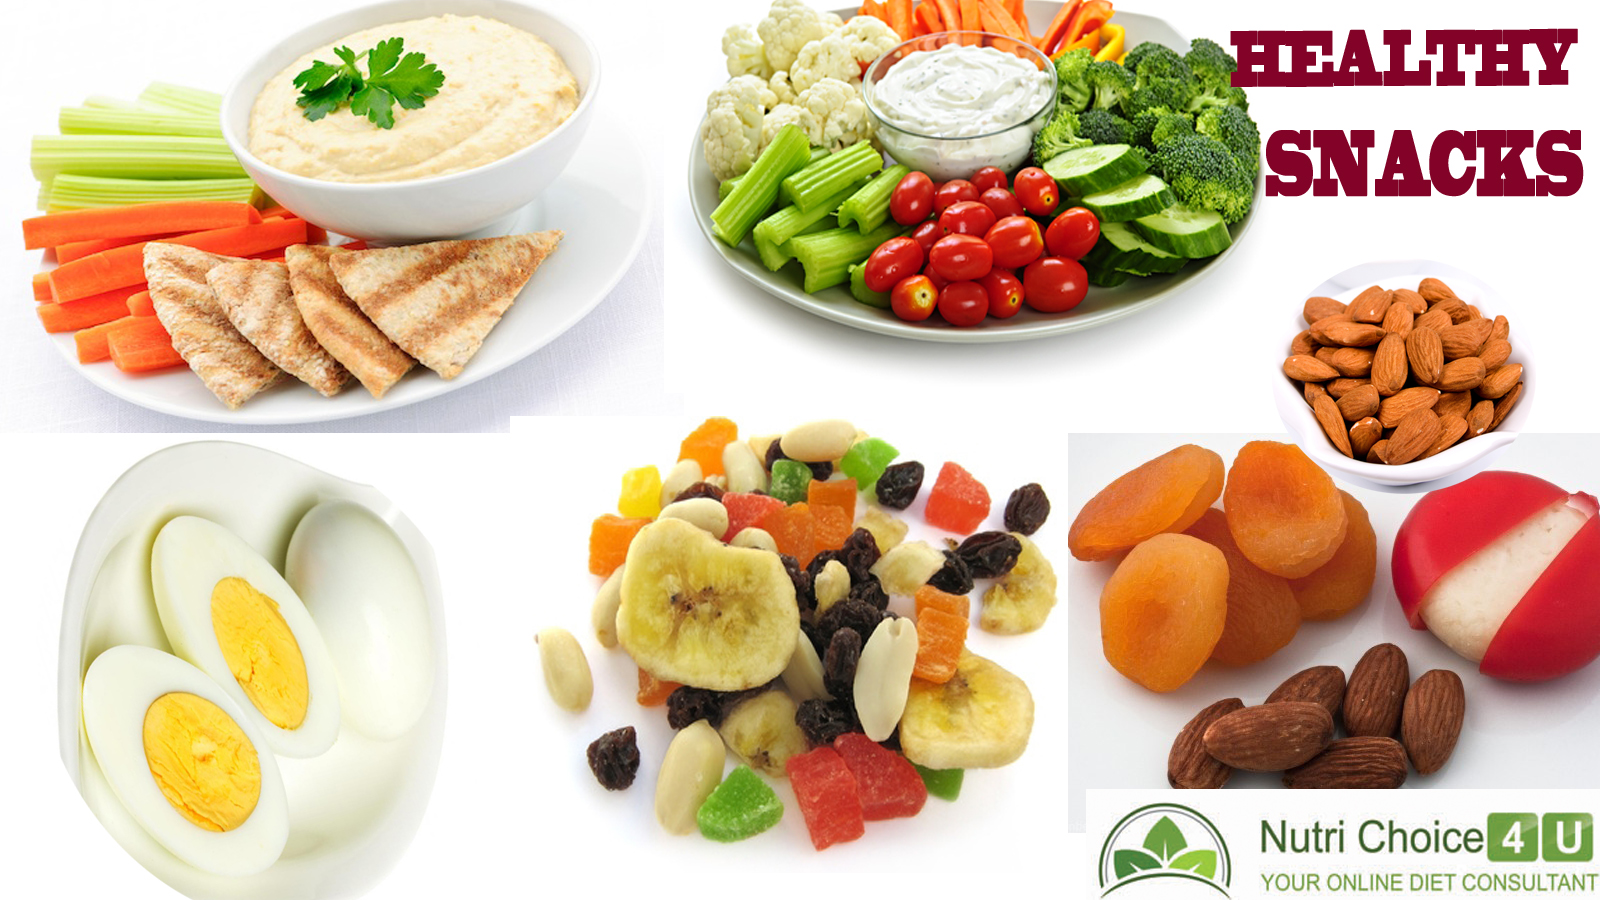 What are healthy options to snack in between meals? / Healthy snacking options.